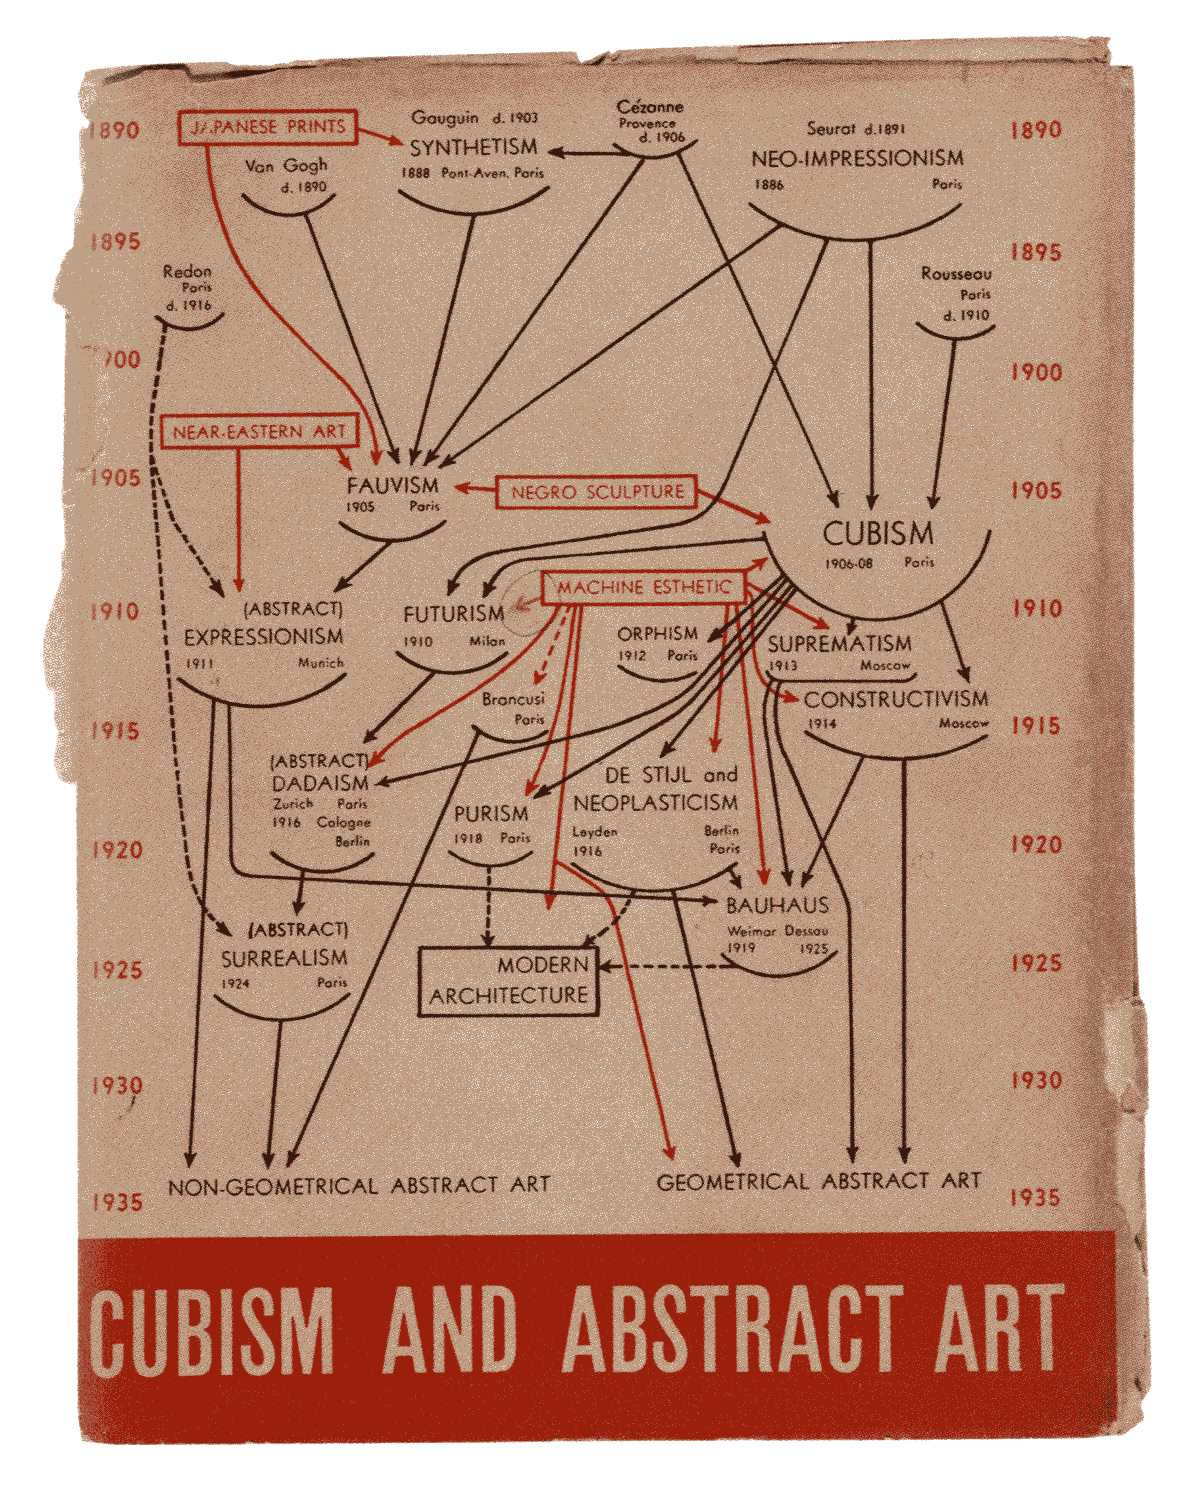 Moma Makes A Facebook For Abstractionists